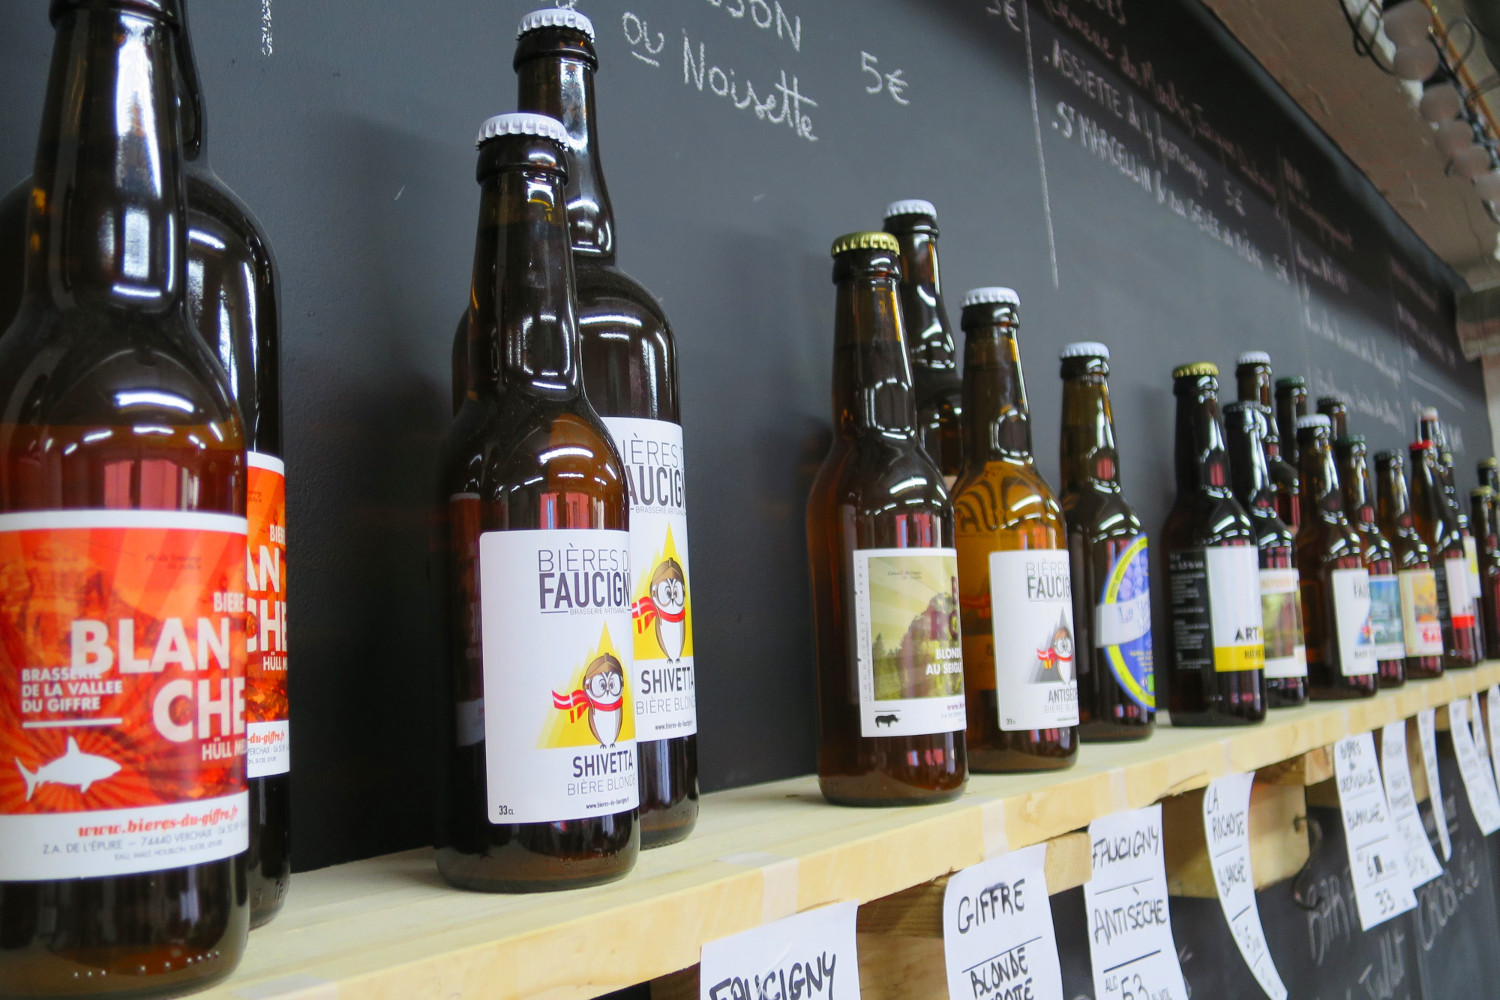 Wide selection of French beer available at ArtMalté in Annecy. Image by Megan Eaves / Lonely Planet